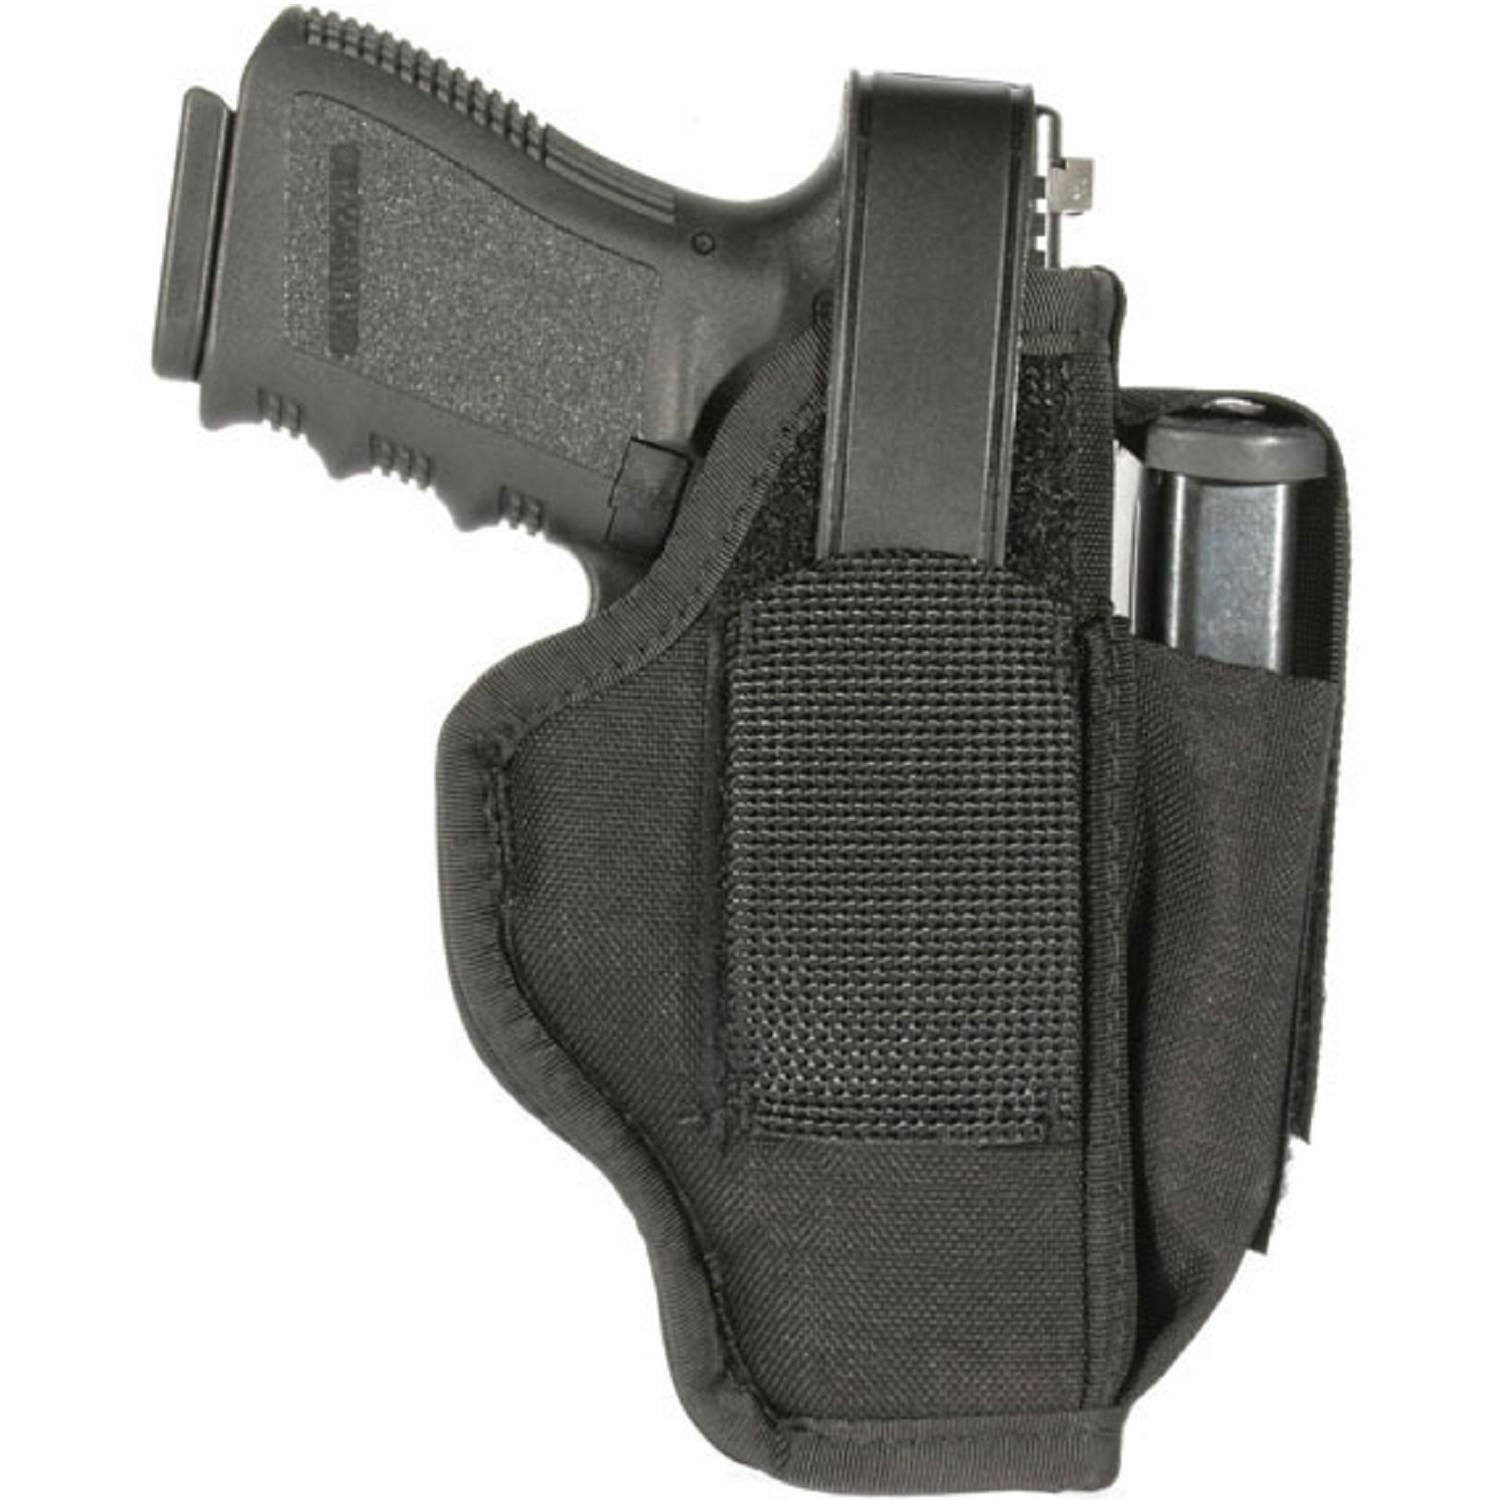 Sportster Ambidextrous Holster with Magazine, Size 5